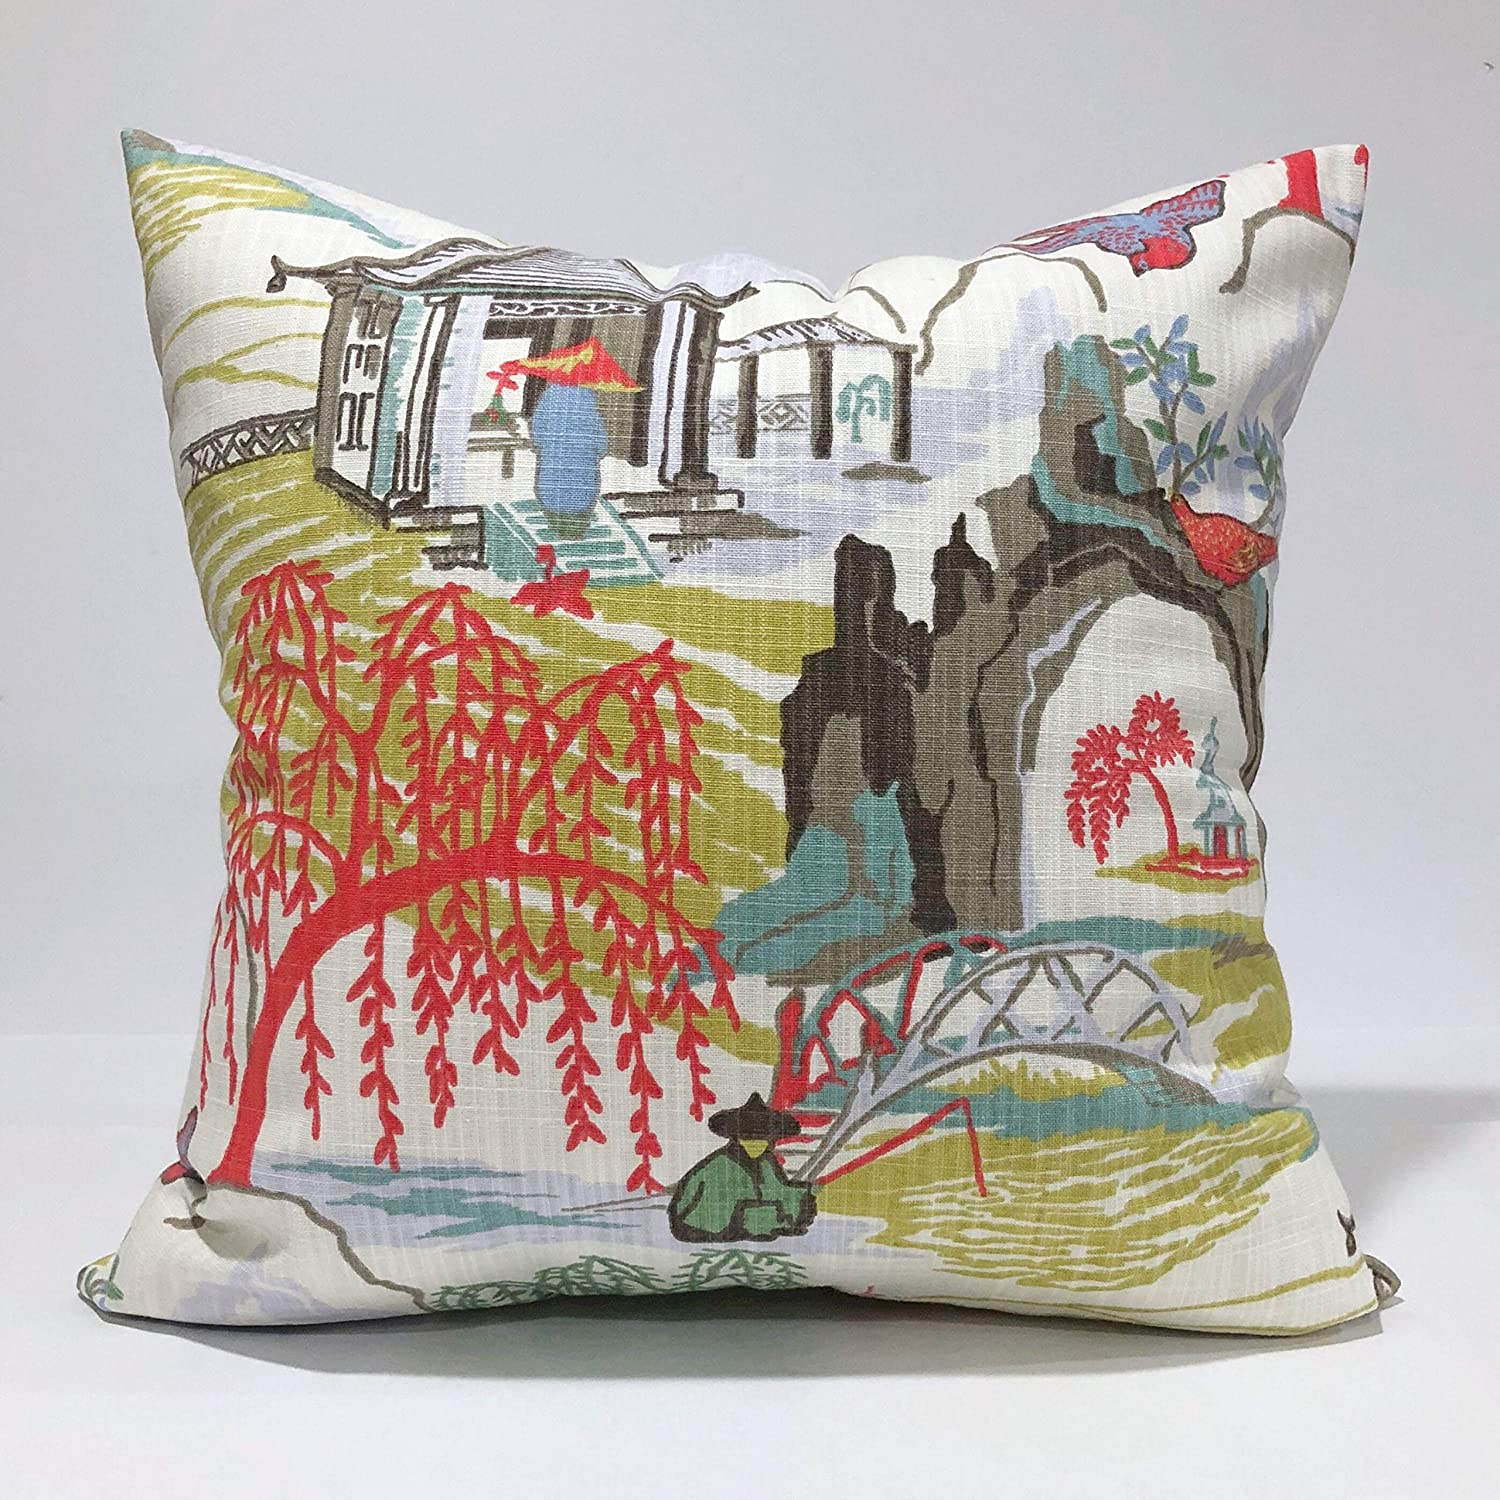 Flowershave357 Robert Allen Home Neo Toile Coral Throw Pillow Cover Aqua Citrine Taupe Brown Lavender Coral Red Green and White Pillow case